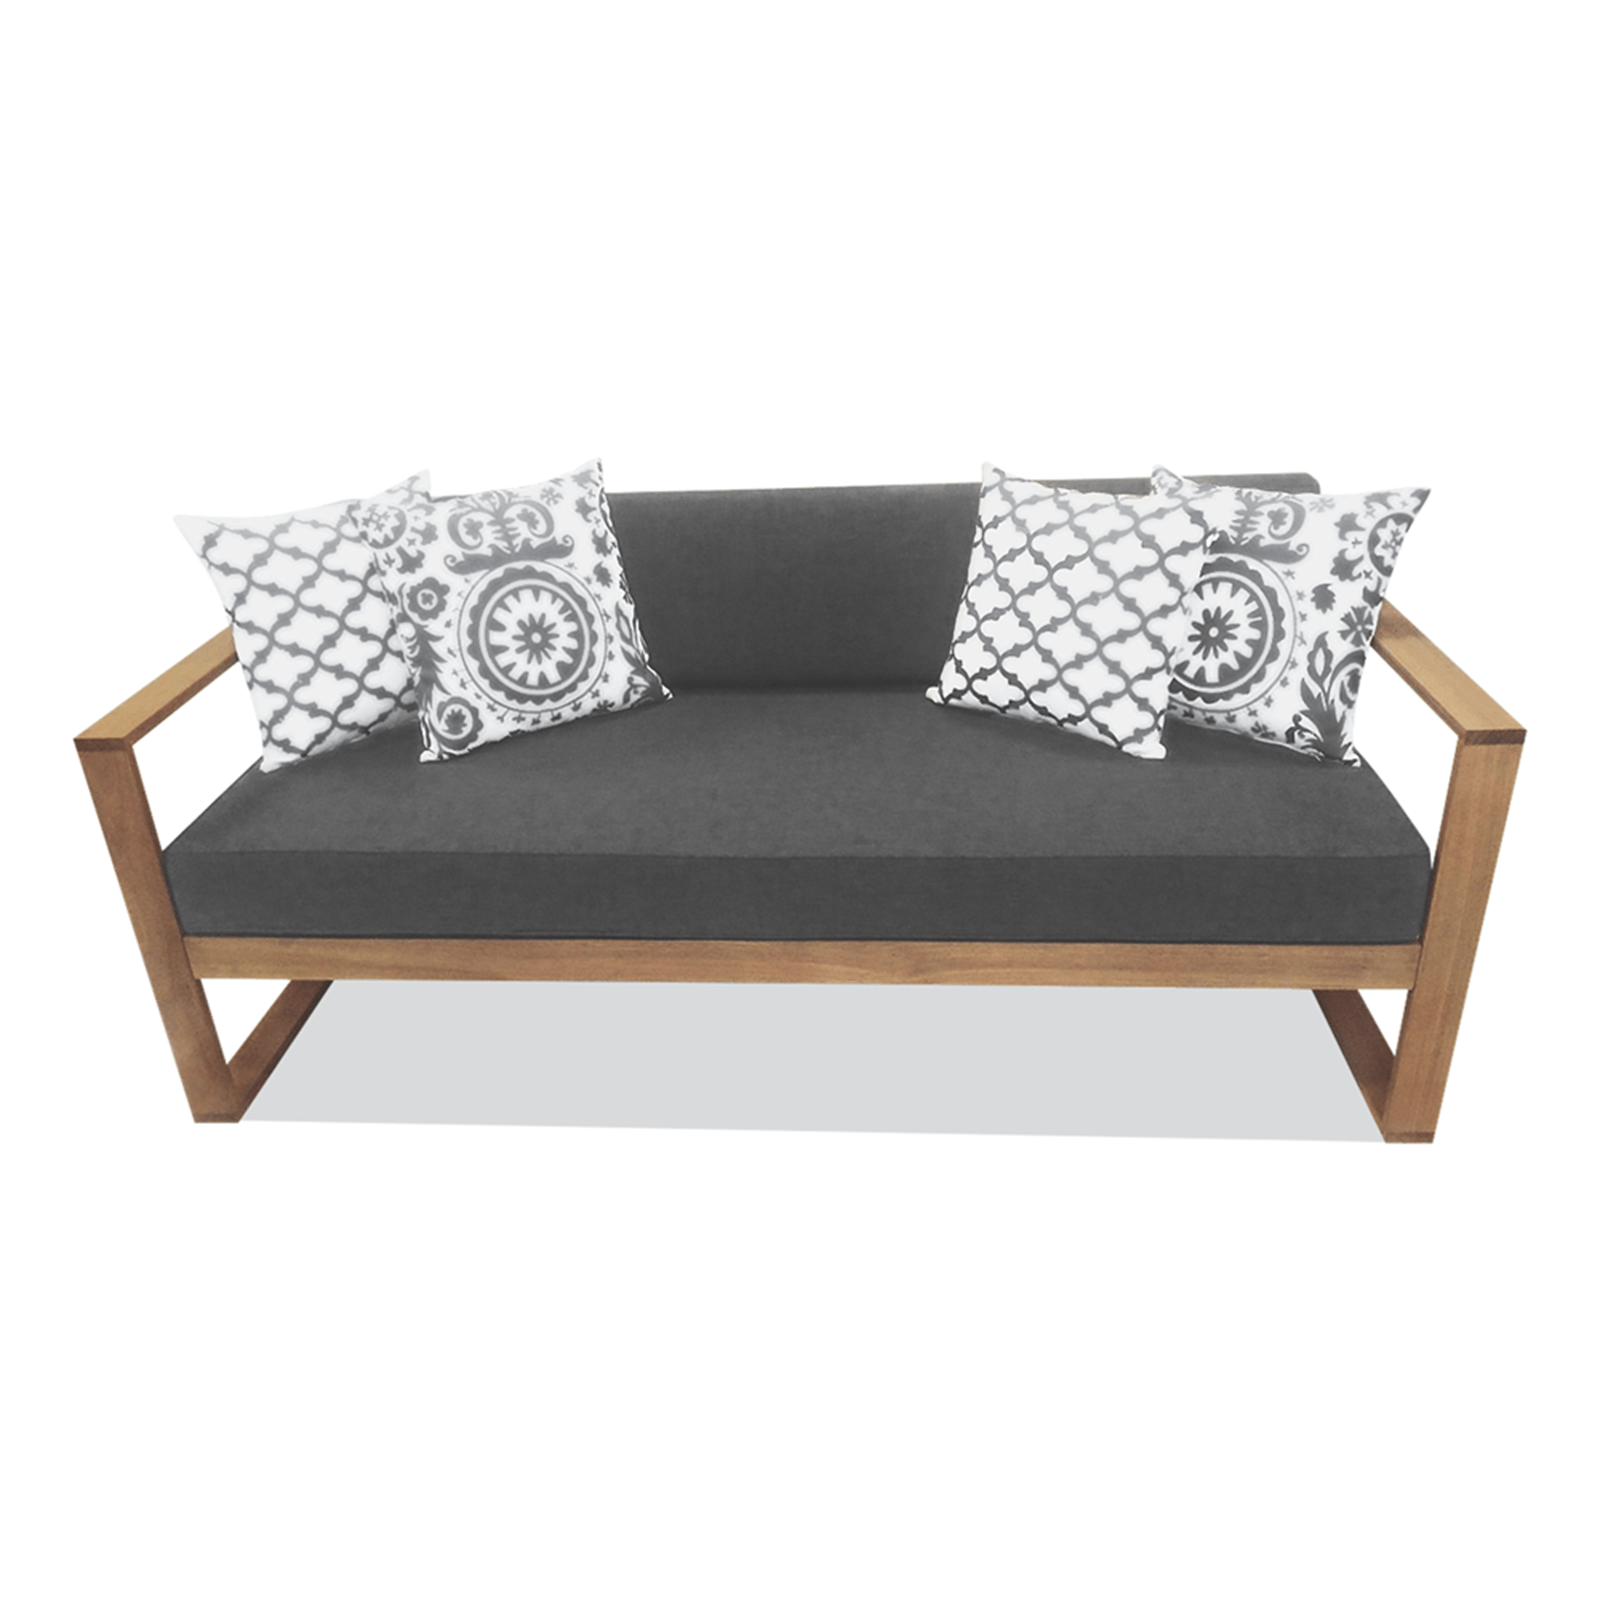 Bunnings Office Chair Find Mimosa Timber Avani Daybed At Bunnings Warehouse